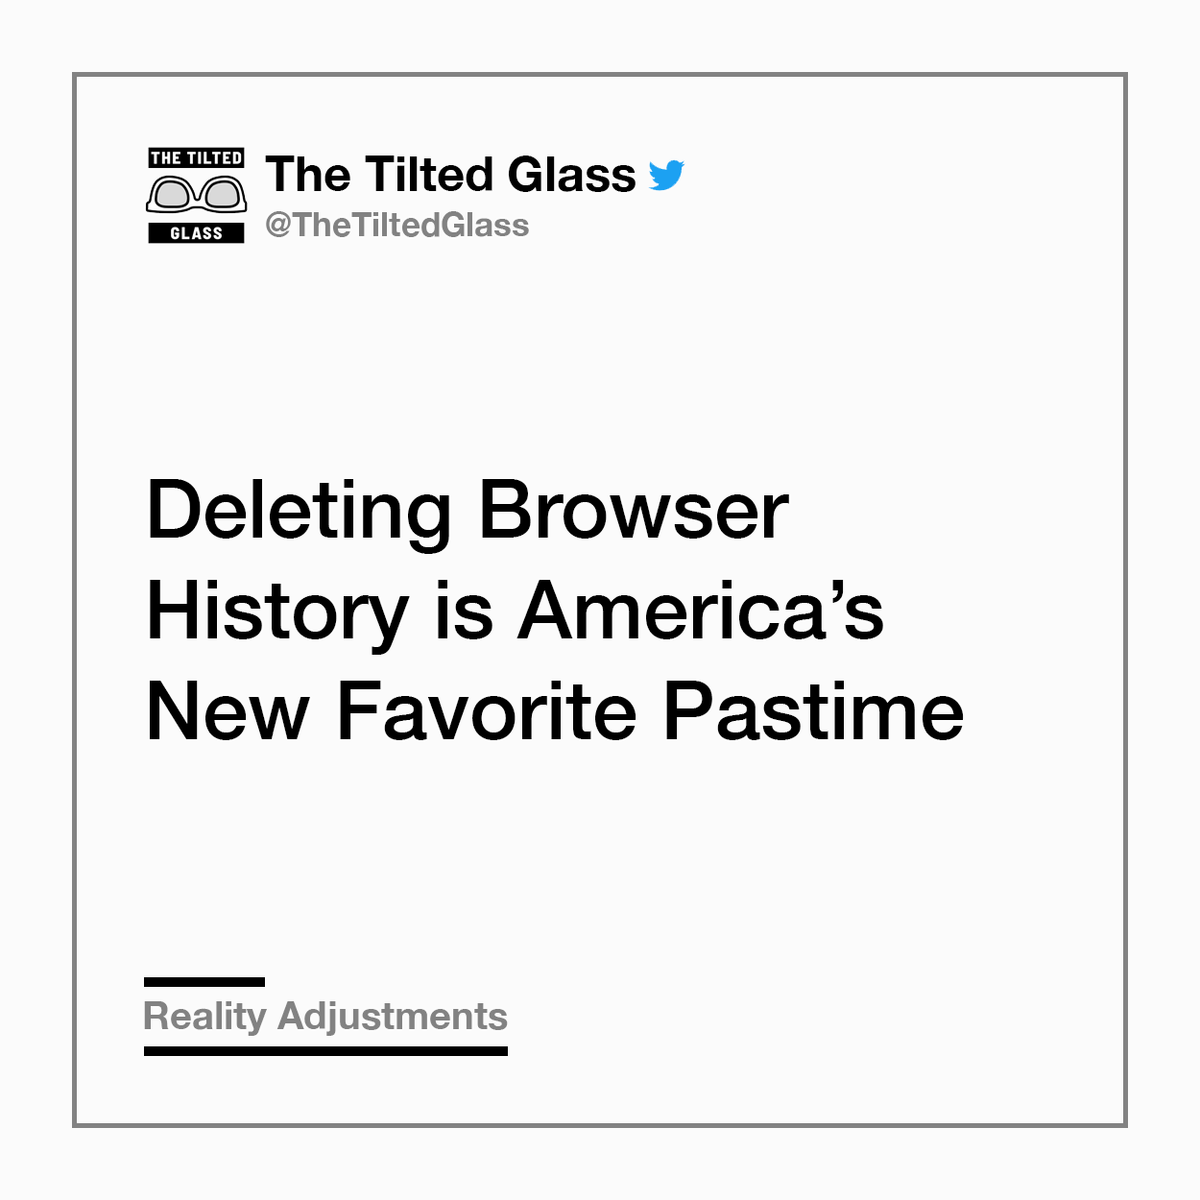 Deleting Browser History is America's New Favorite Pastime